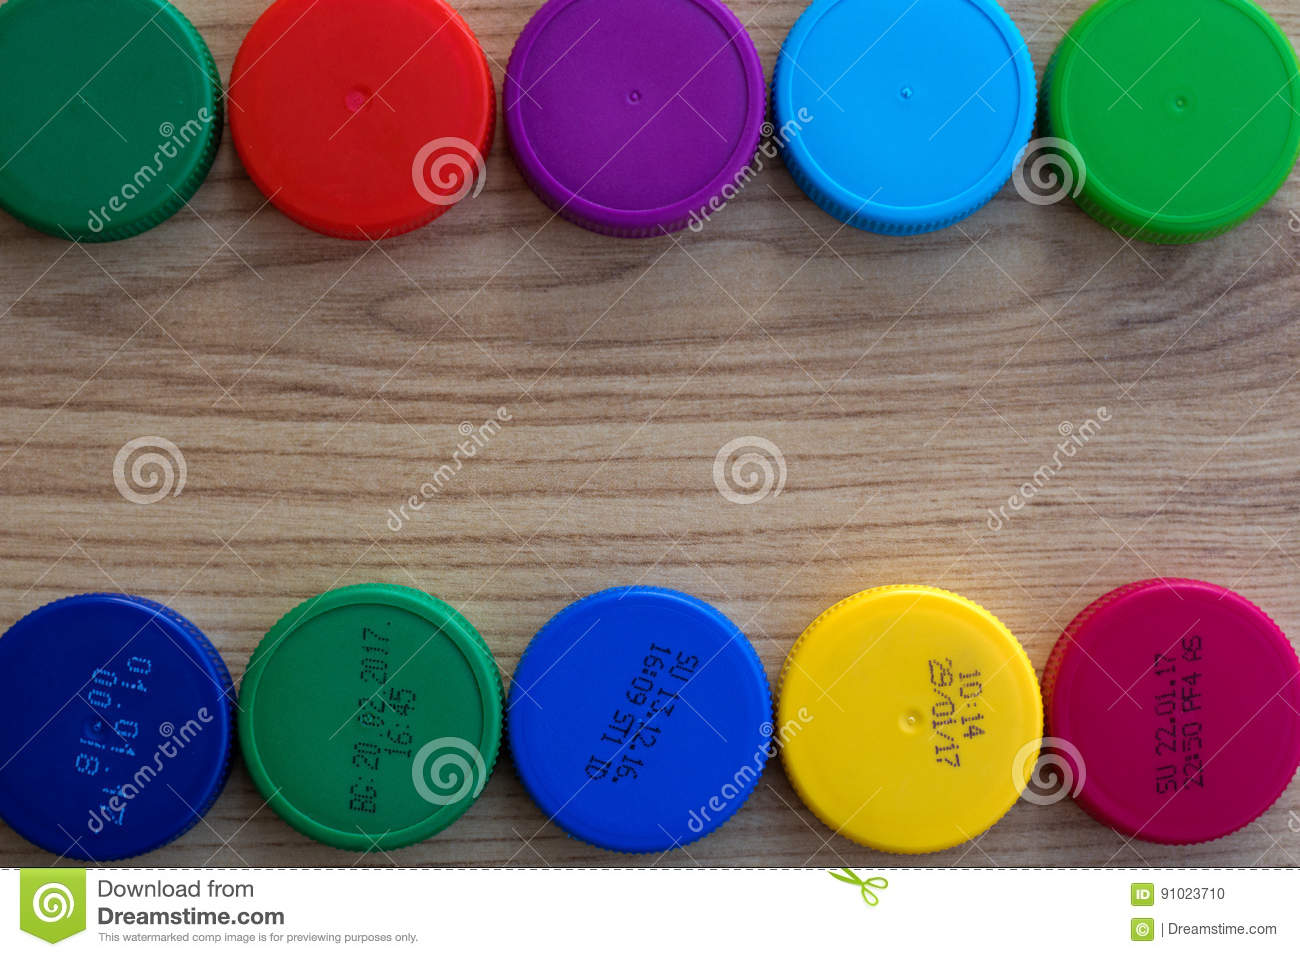 Bottle caps with and without the production date